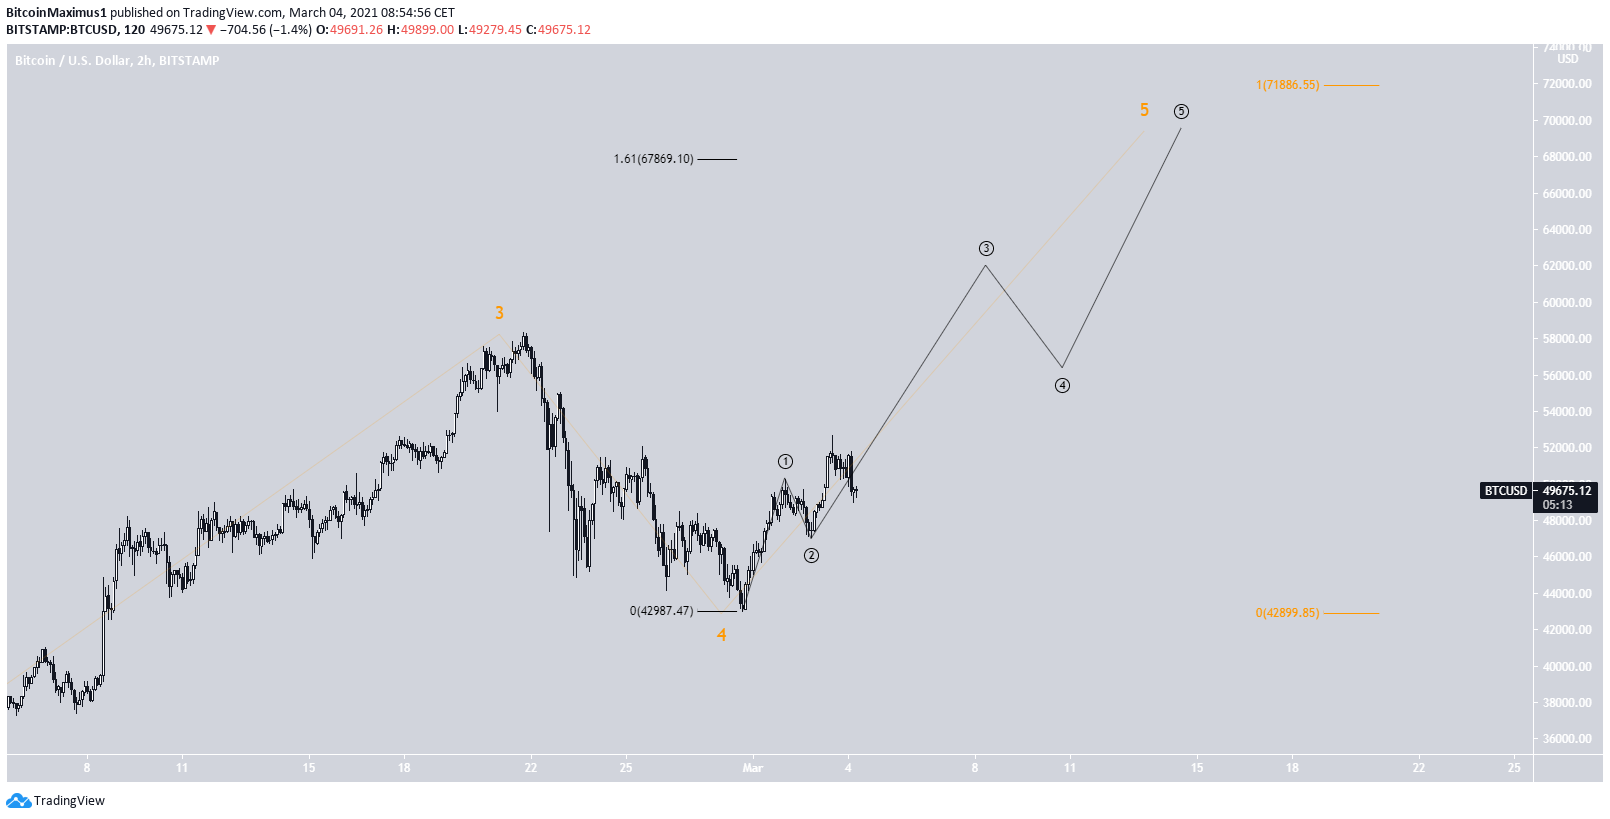 BTC Sub-Wave Count